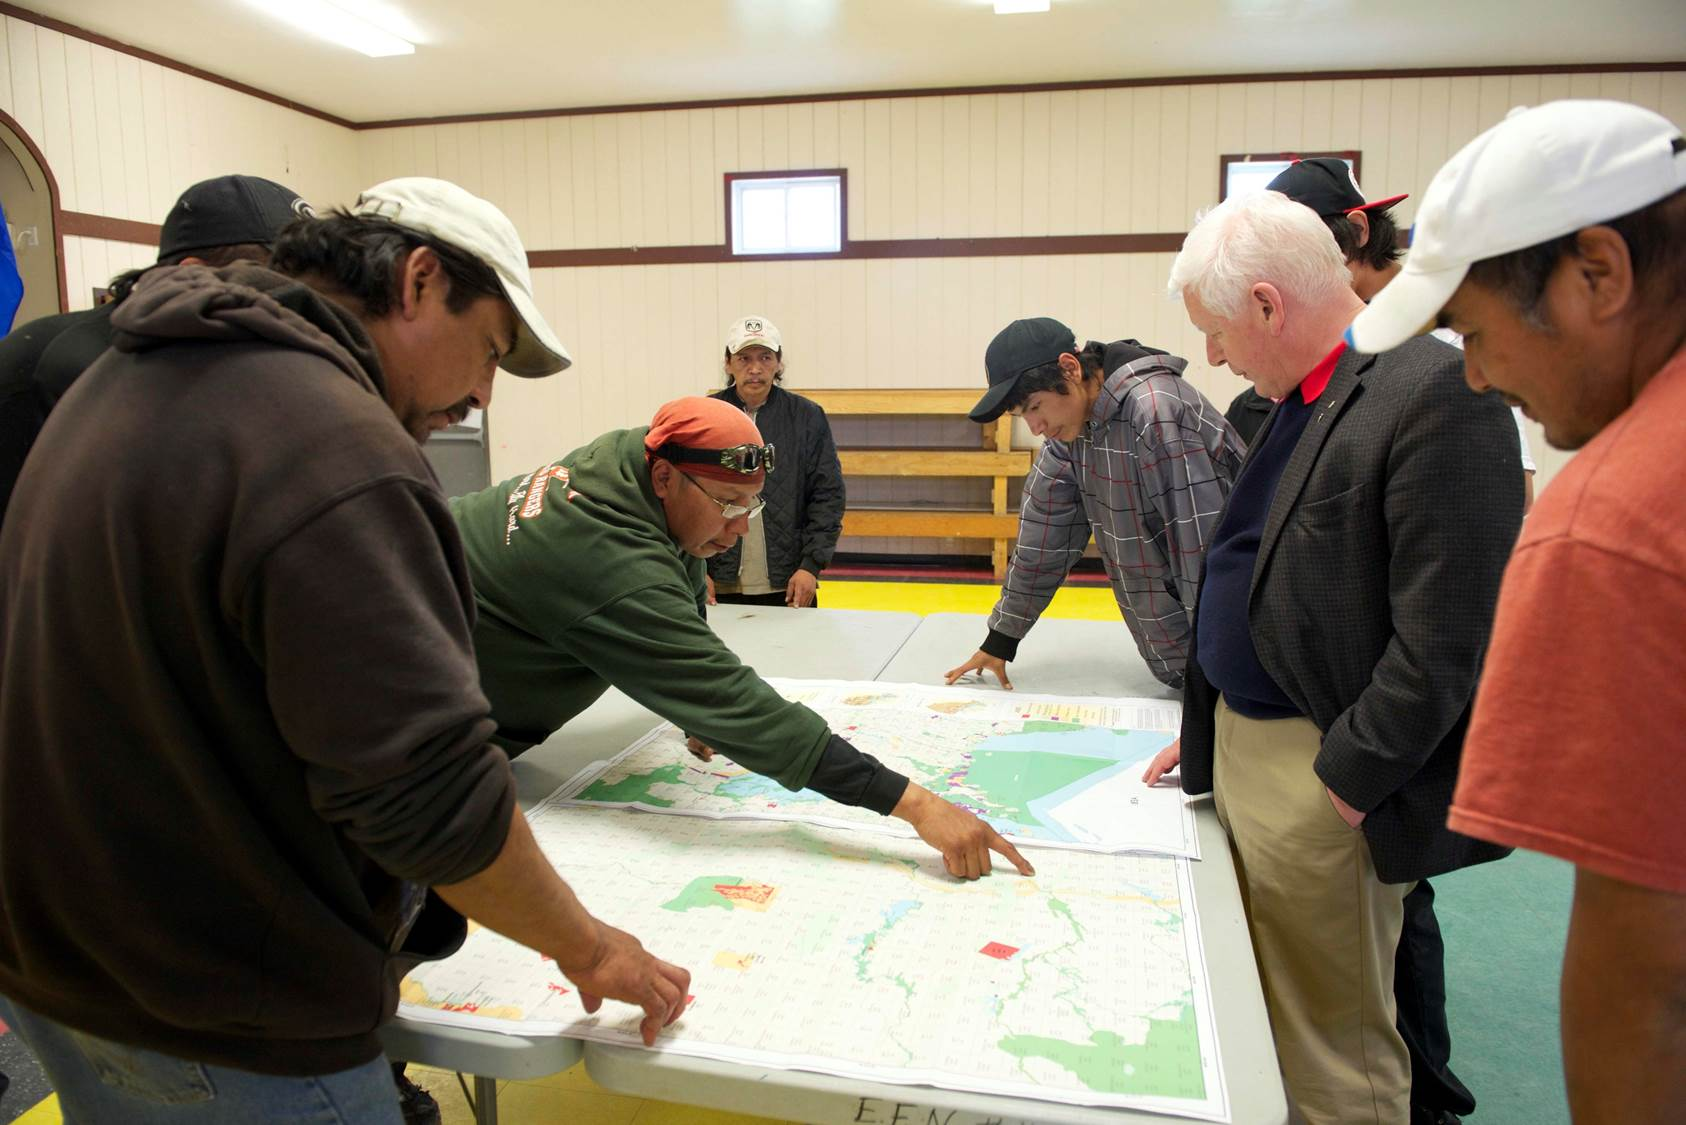 Matawa member First Nation community members discussing land use planning and infrastructue development in the Ring of Fire with their lead negotiator, Bob Rae